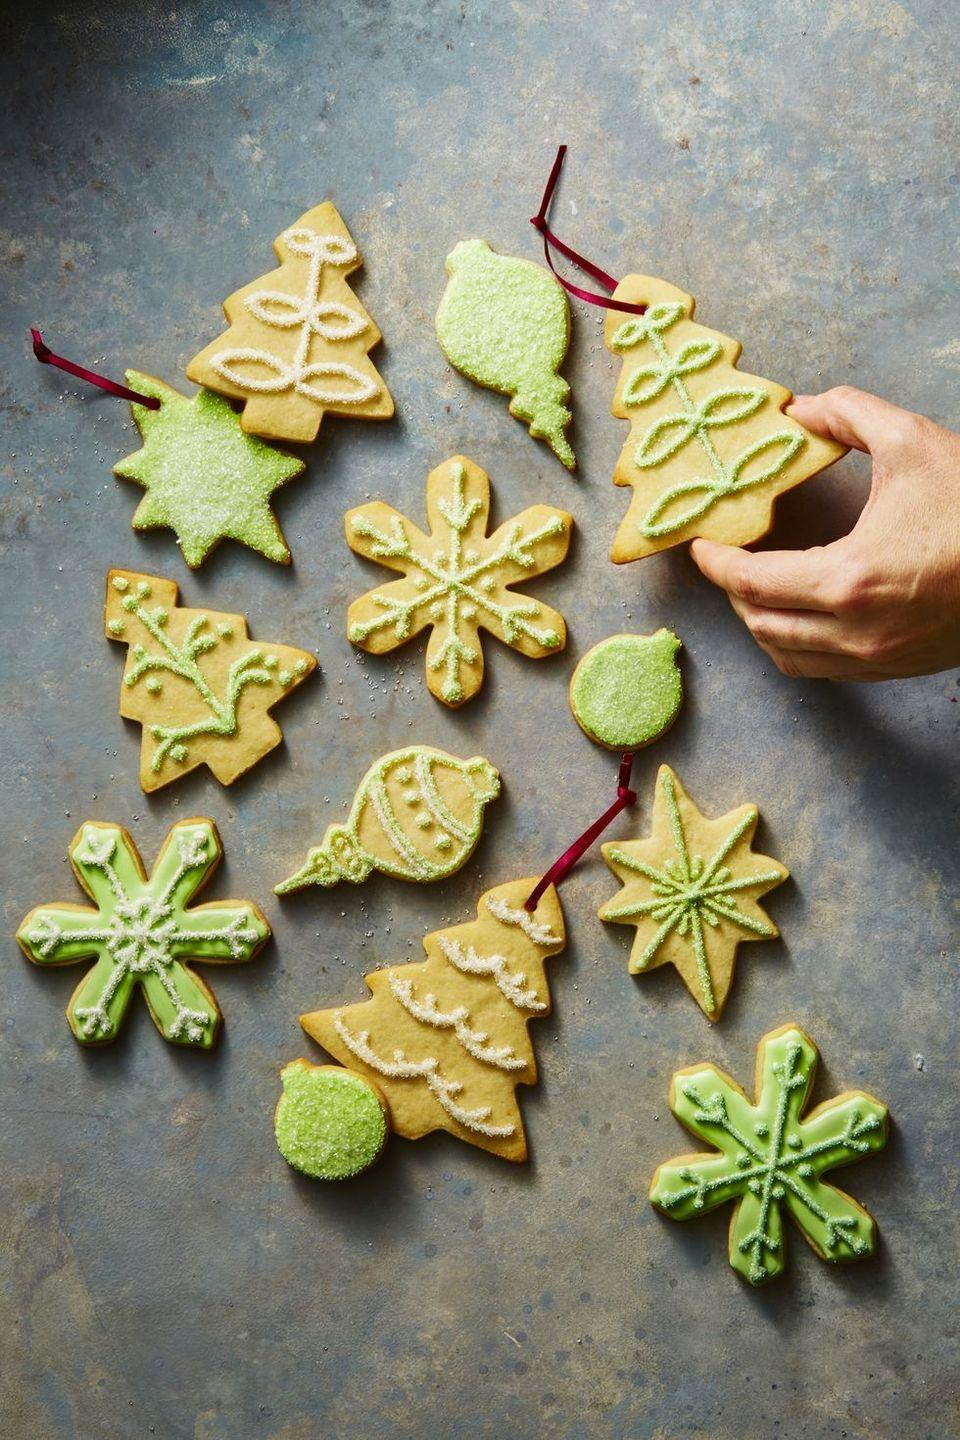 """<p>The best part of baking up a batch of """"ornament cookies"""" is forgetting they're for the tree—oh, and nibbling on a few. (We won't tell!)</p><p><strong>Get the tutorial at <a href=""""https://www.goodhousekeeping.com/food-recipes/dessert/a46925/sugar-cookie-ornaments-recipe/"""" rel=""""nofollow noopener"""" target=""""_blank"""" data-ylk=""""slk:Good Housekeeping"""" class=""""link rapid-noclick-resp"""">Good Housekeeping</a>. </strong></p><p><a class=""""link rapid-noclick-resp"""" href=""""https://www.amazon.com/slp/red-ribbons/6yz5jcy7bja2735?tag=syn-yahoo-20&ascsubtag=%5Bartid%7C10050.g.1070%5Bsrc%7Cyahoo-us"""" rel=""""nofollow noopener"""" target=""""_blank"""" data-ylk=""""slk:SHOP RED RIBBON"""">SHOP RED RIBBON</a></p>"""